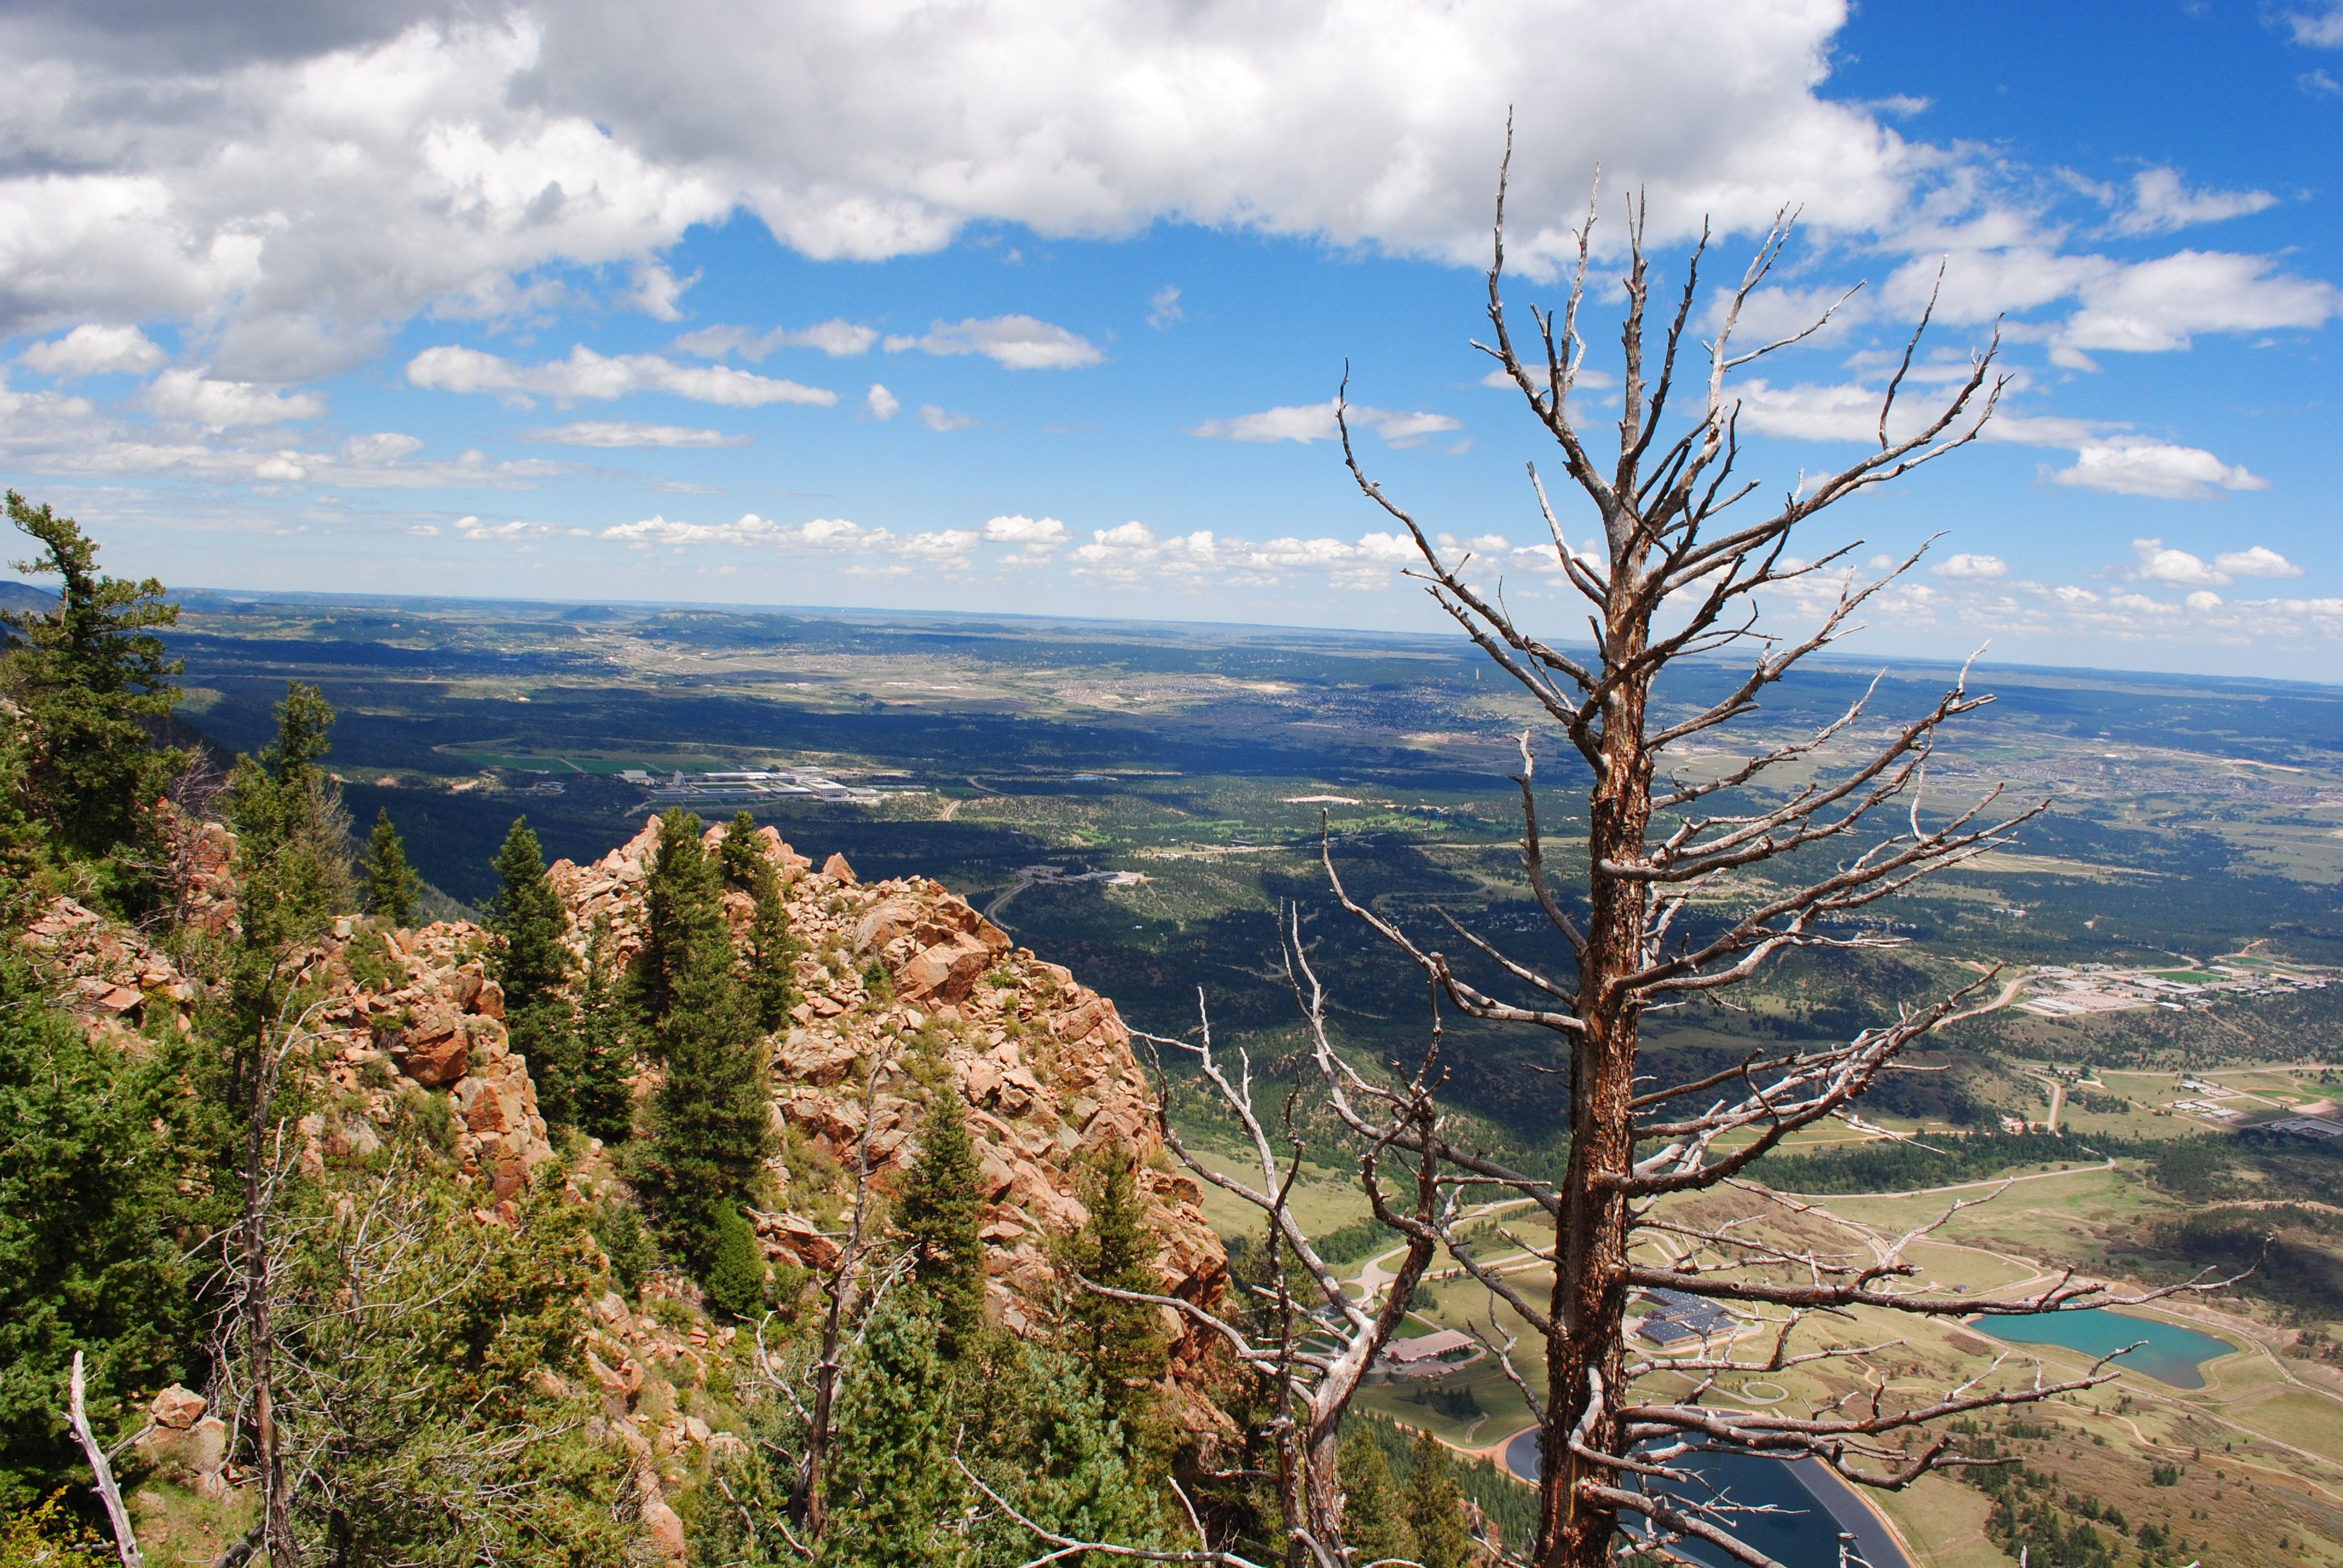 View from the top of Blodgett Peak in Colorado.